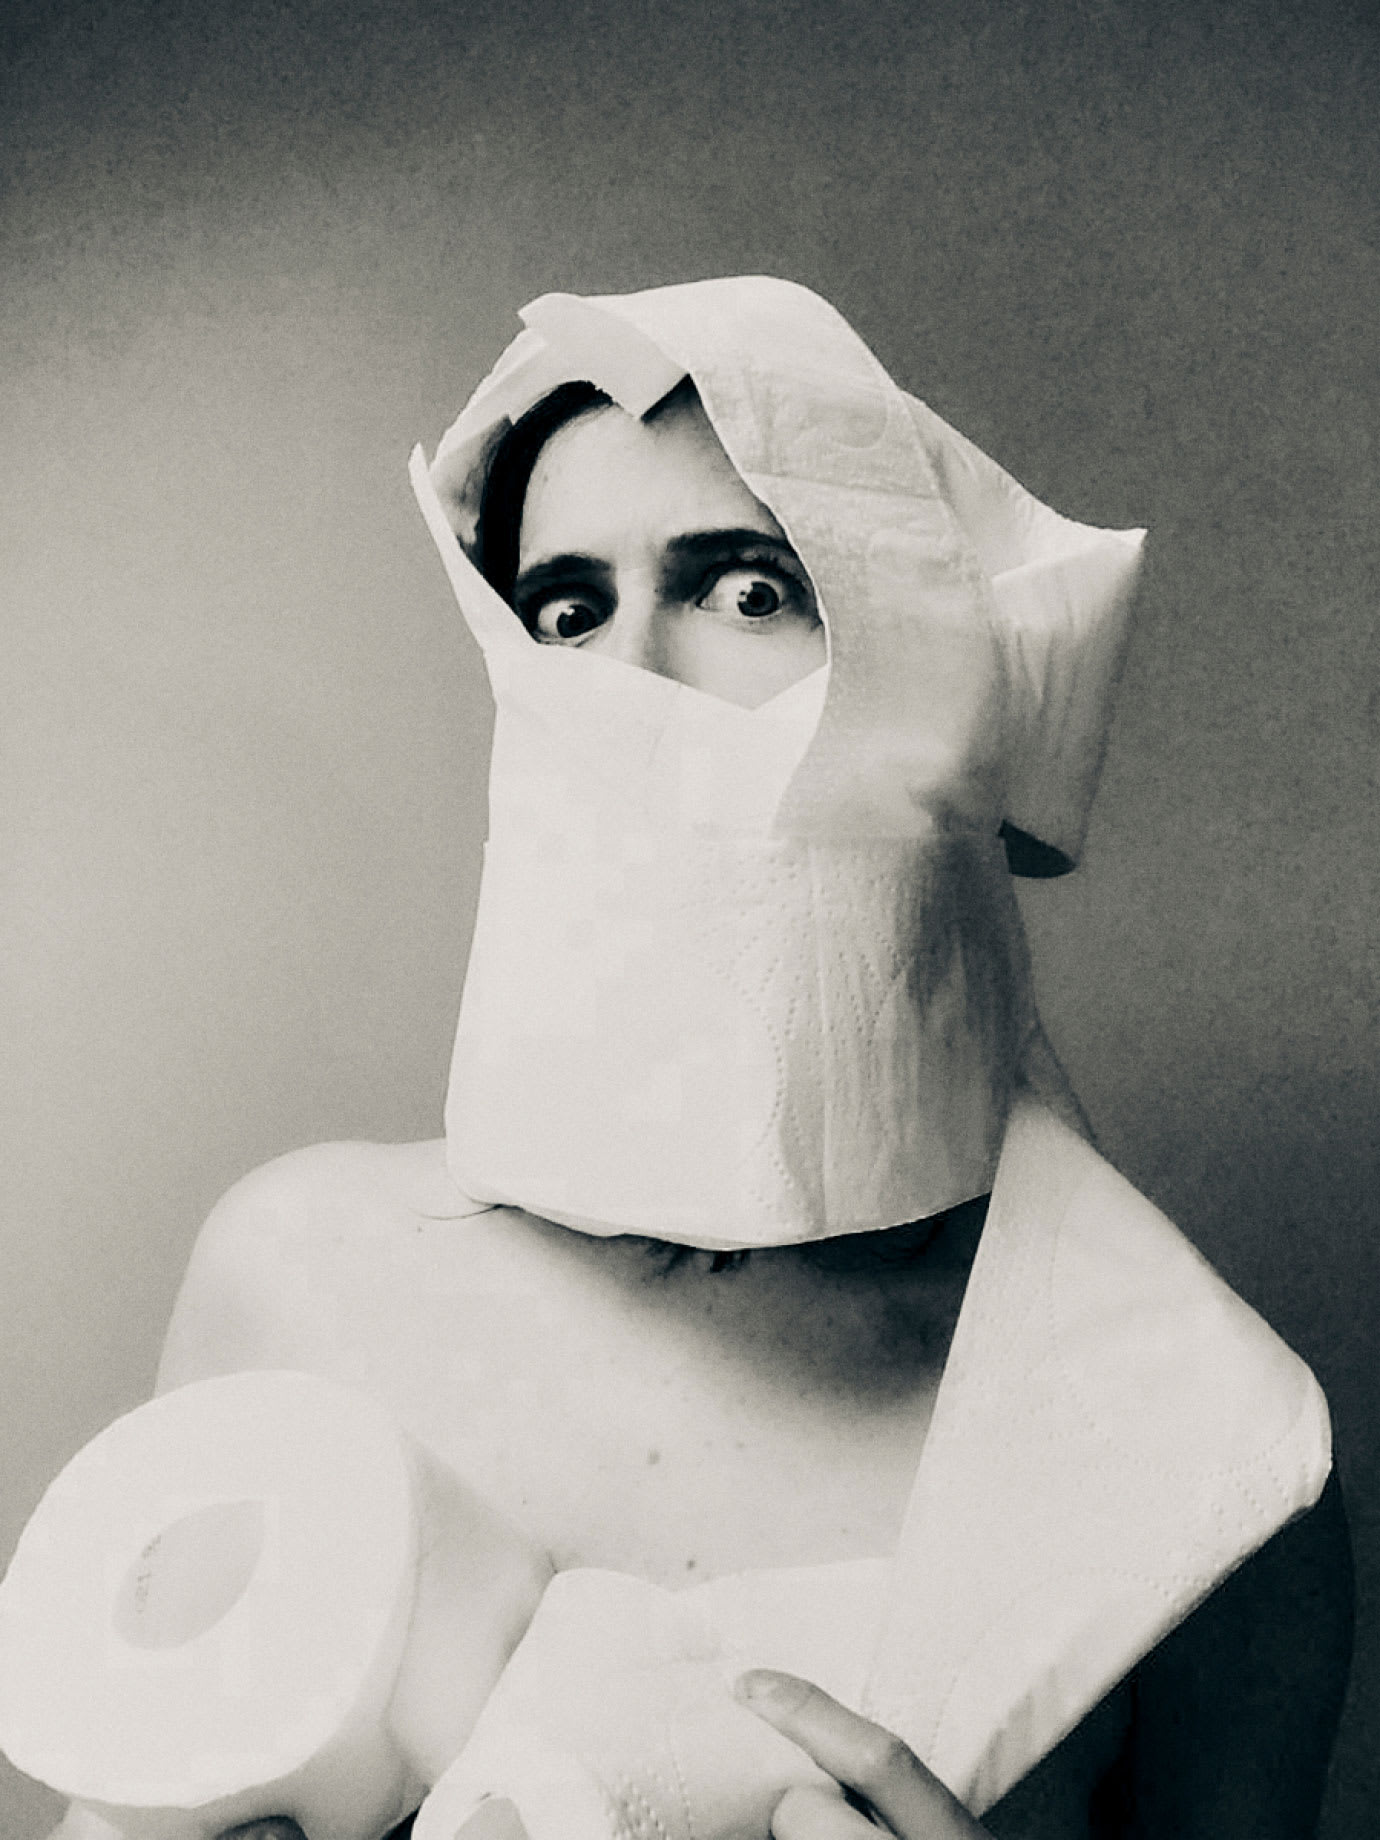 A woman covered in rolls of toilet paper.